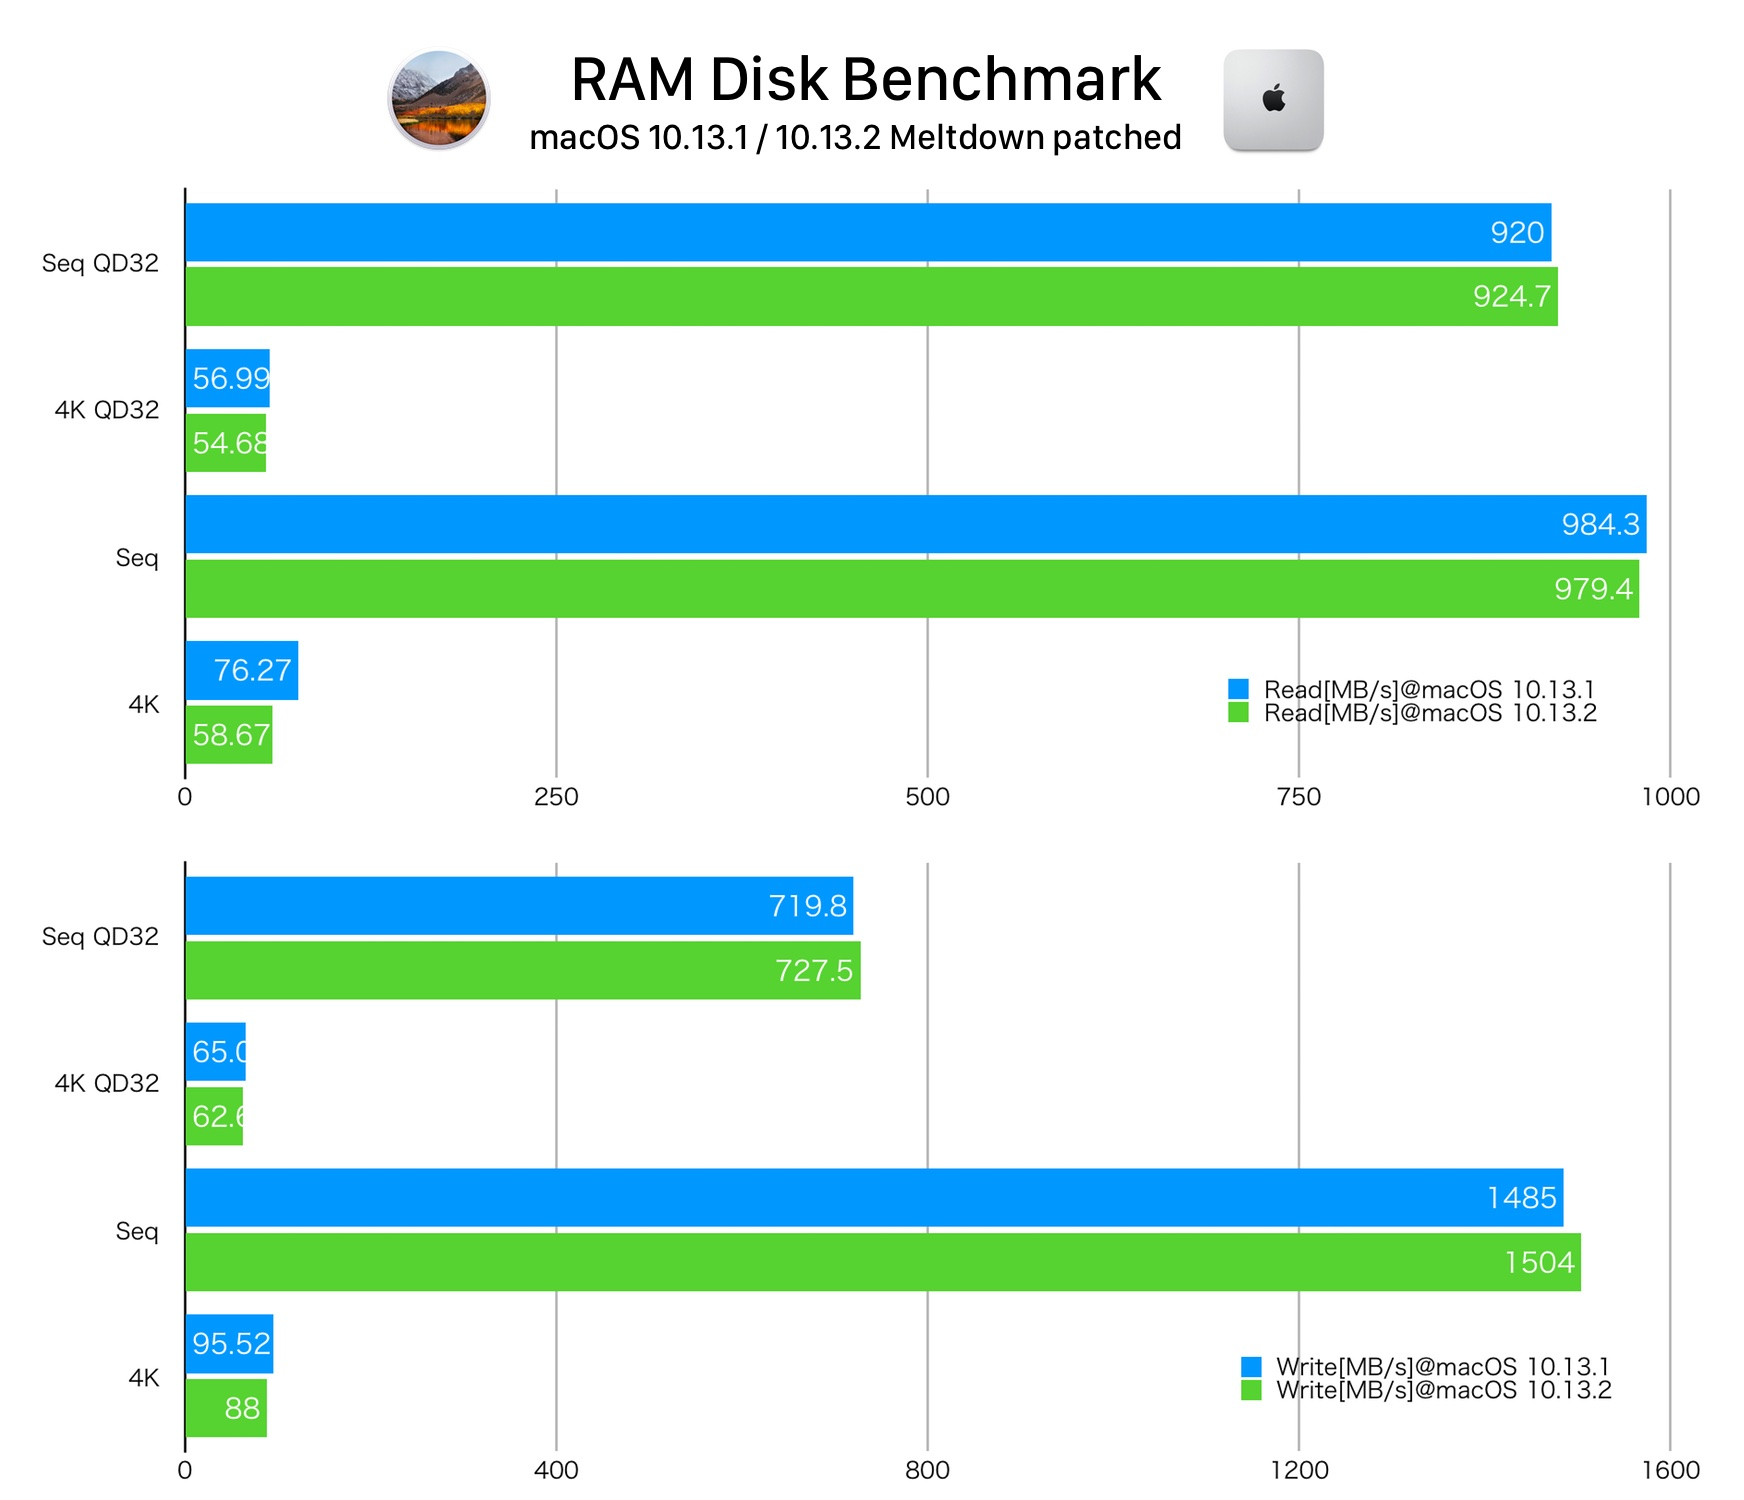 Meltdown benchmark